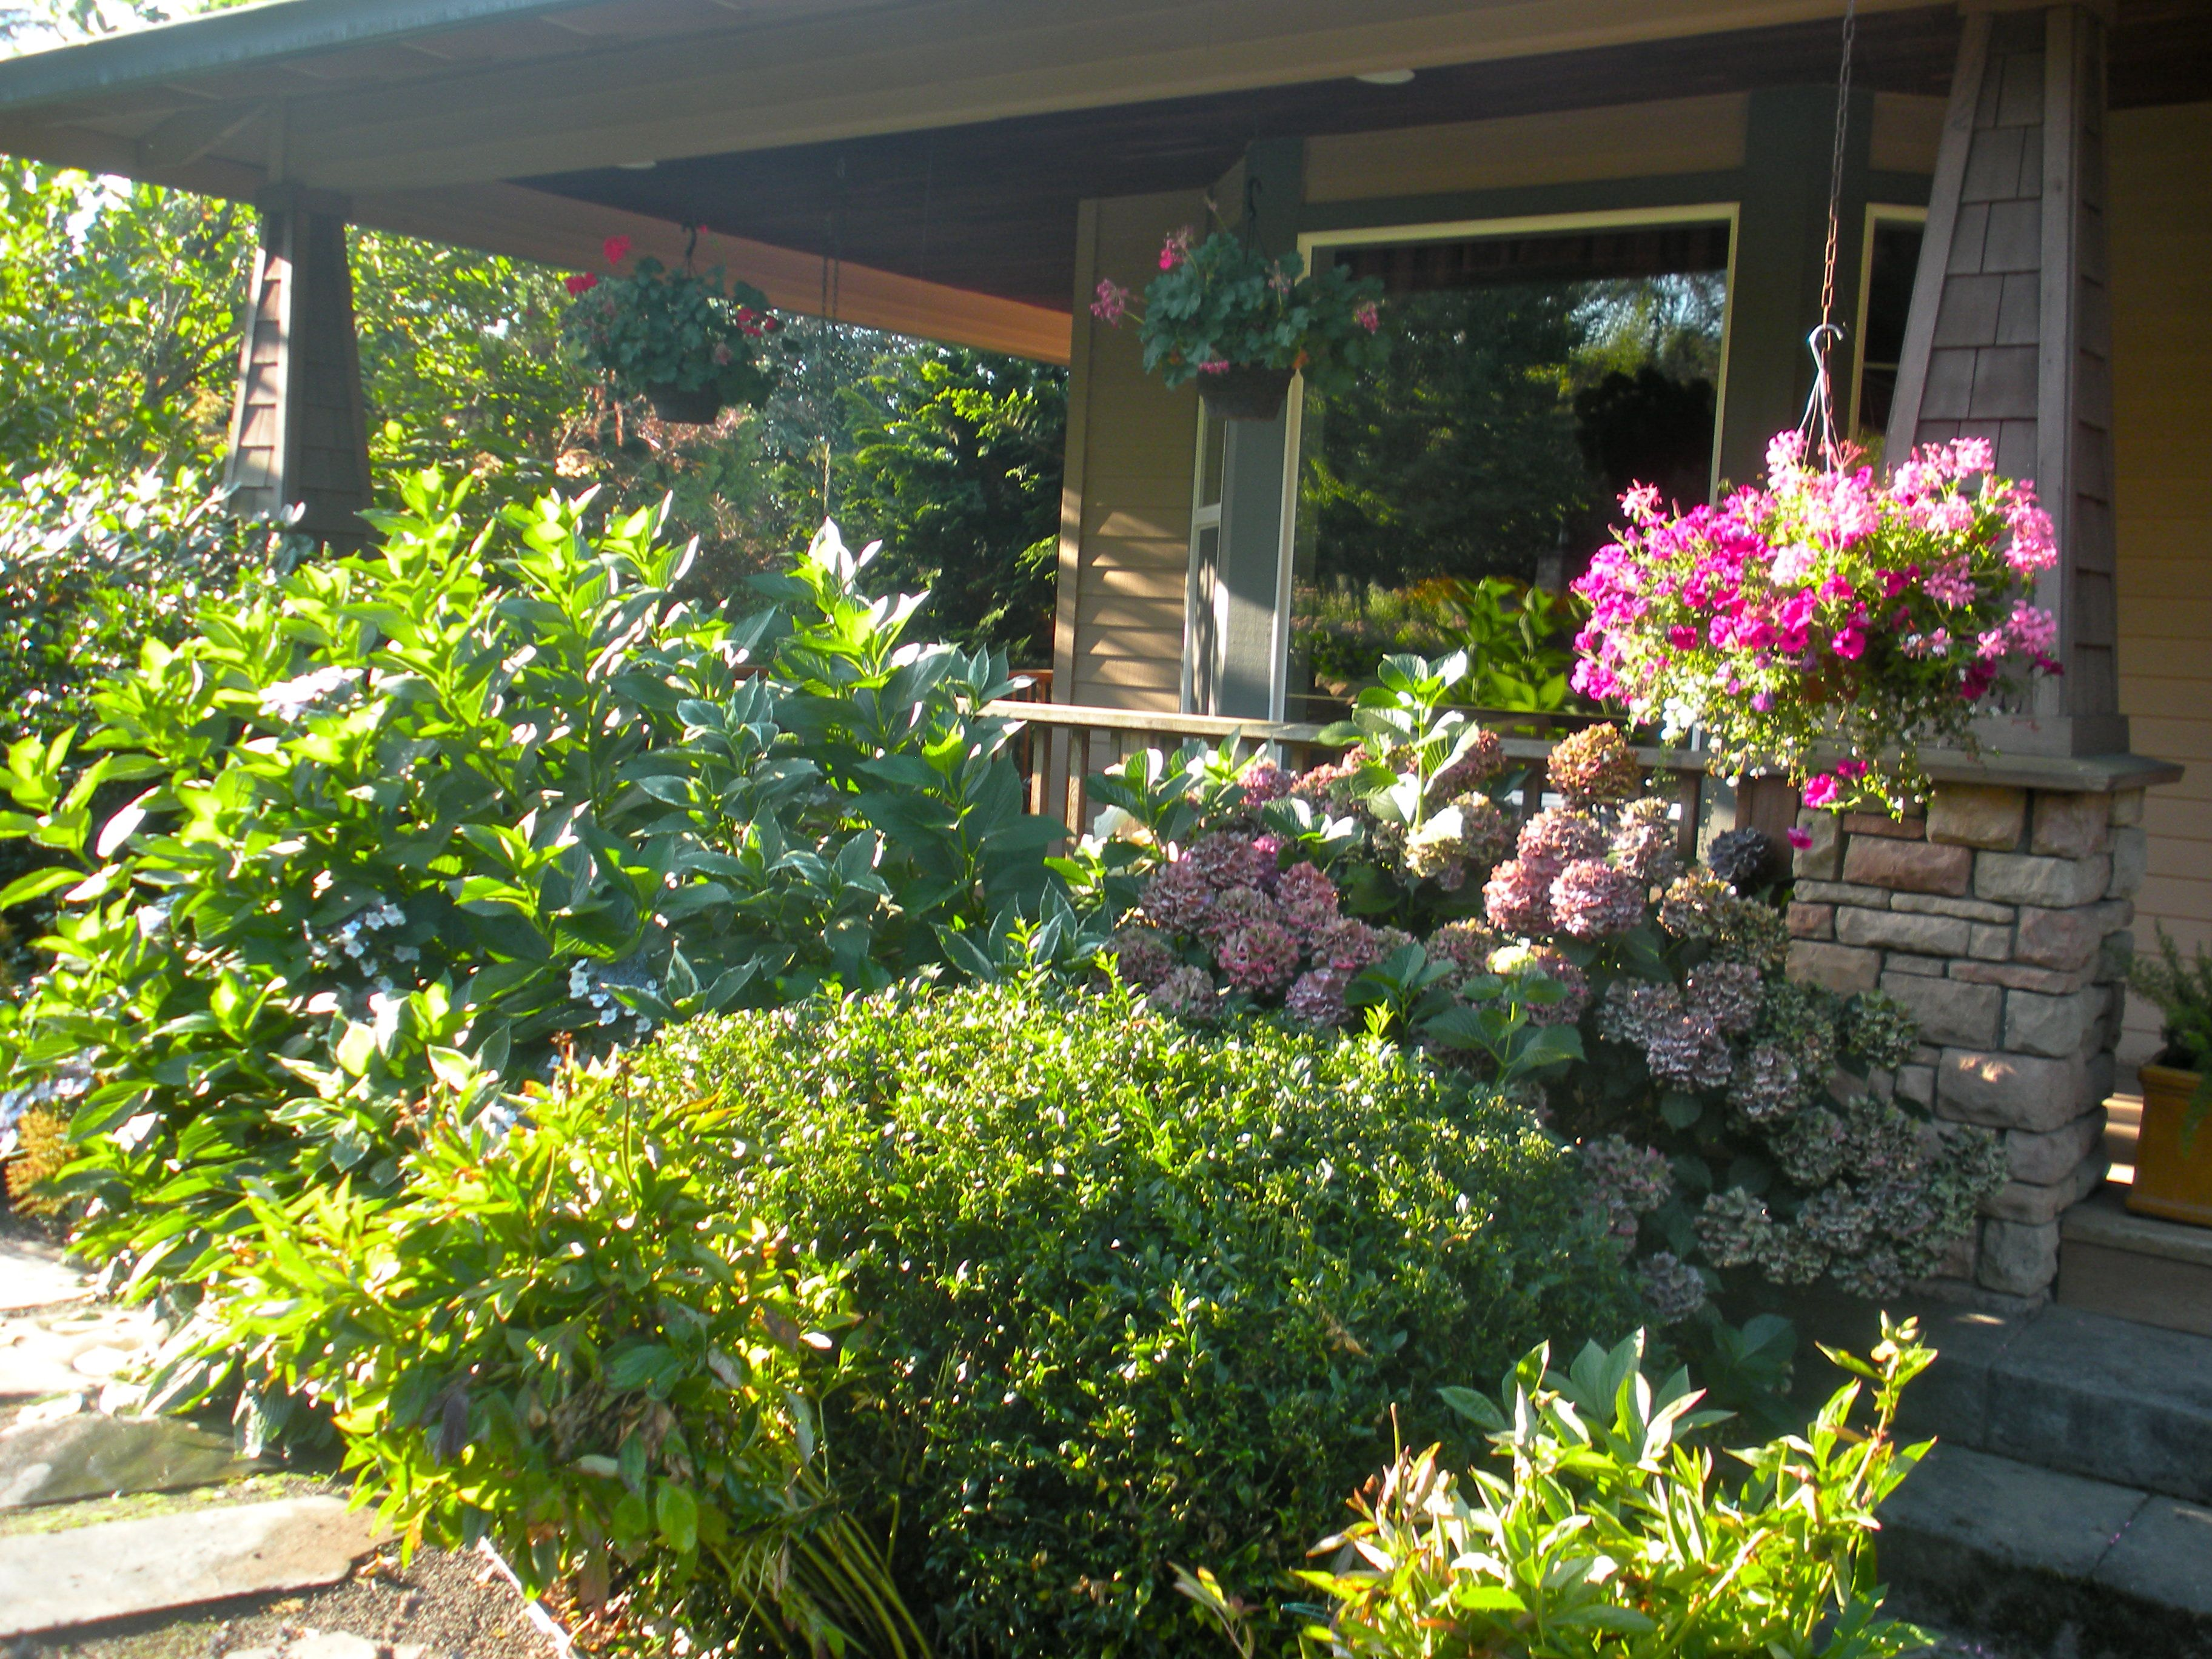 Layered Hydrangeas Camellias Rhododendrons Astilbes Hostas Shady Front Porch Garden Front Porch Garden Front Garden Porch Garden